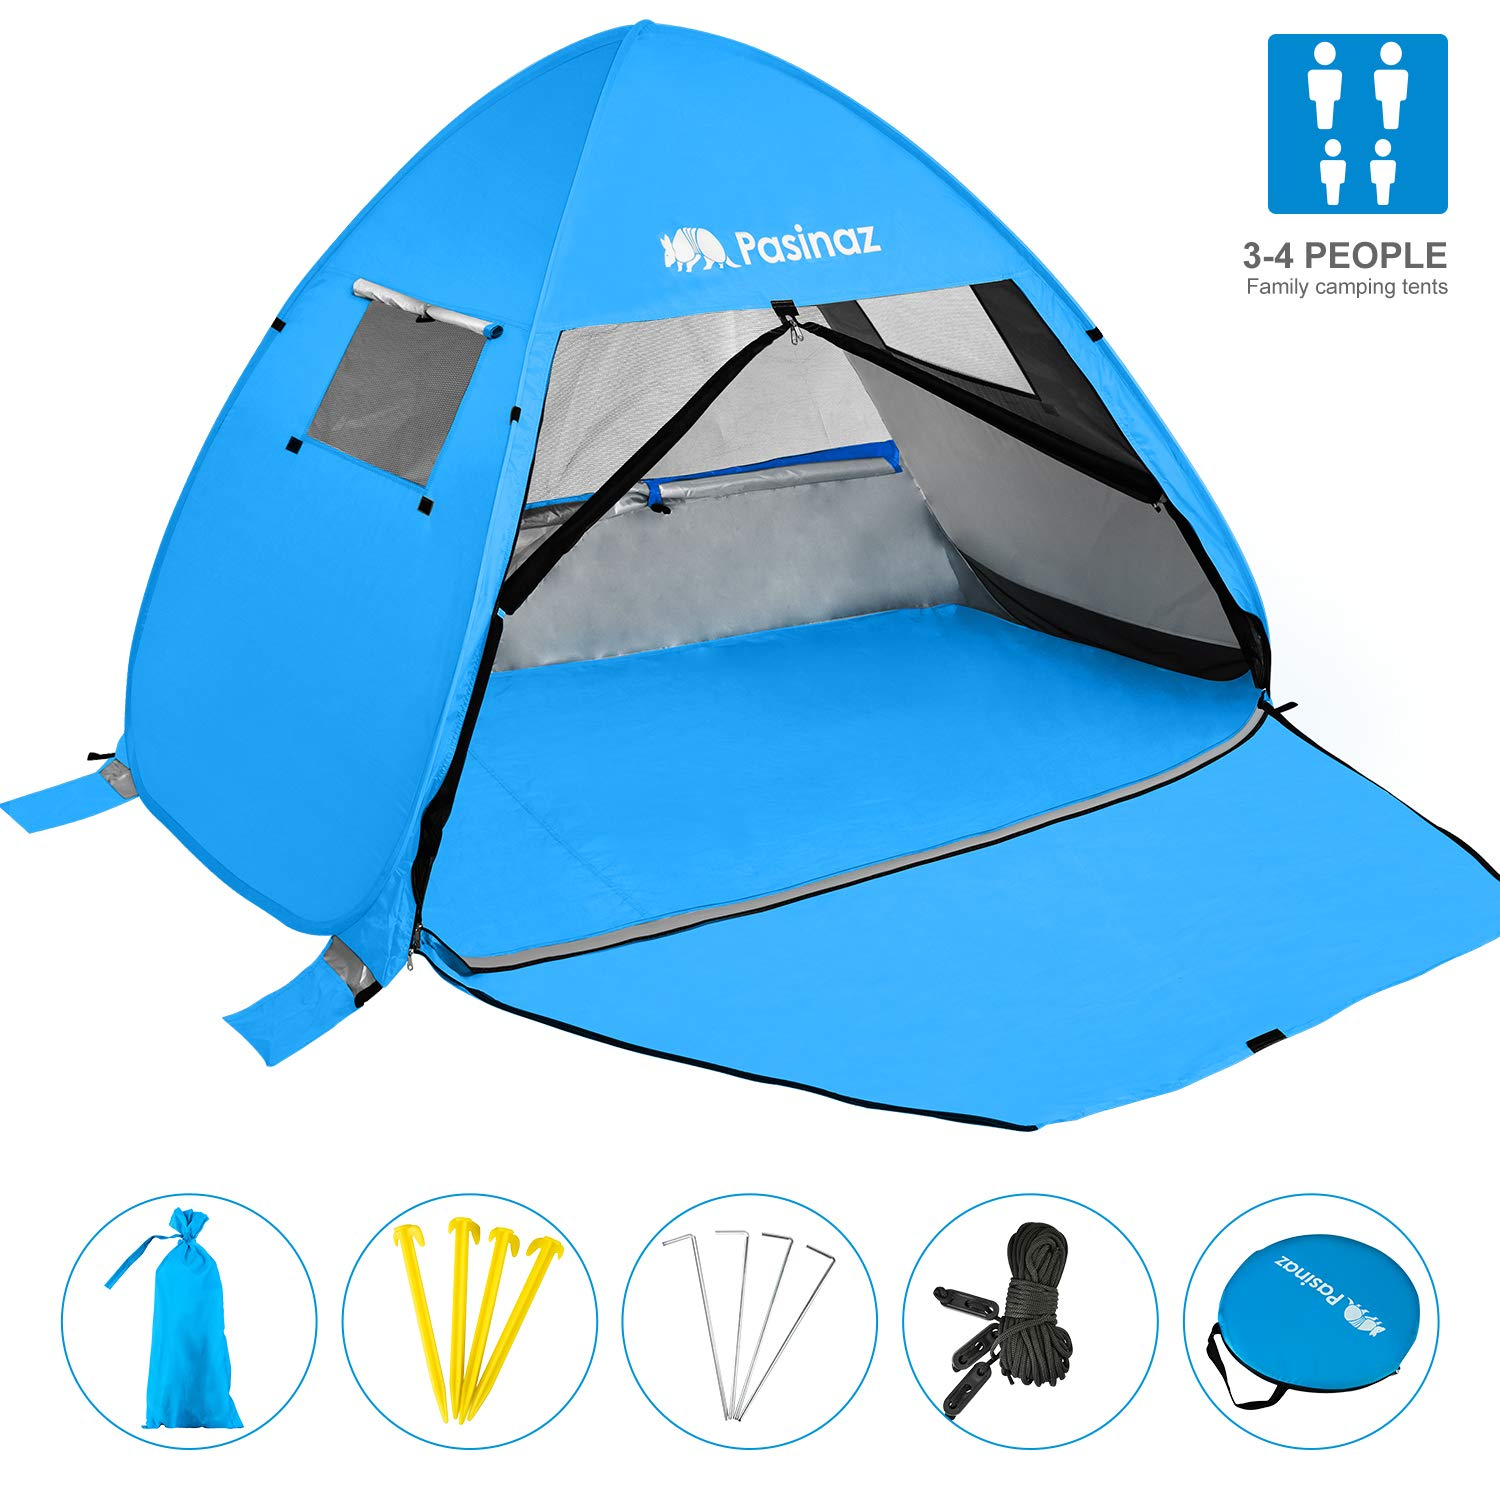 Pasinaz Pop Up Tent 3-4 People Family Beach Tent Camping Shelter Anti UV Sun Shade Outdoor Cabana Blue by Pasinaz